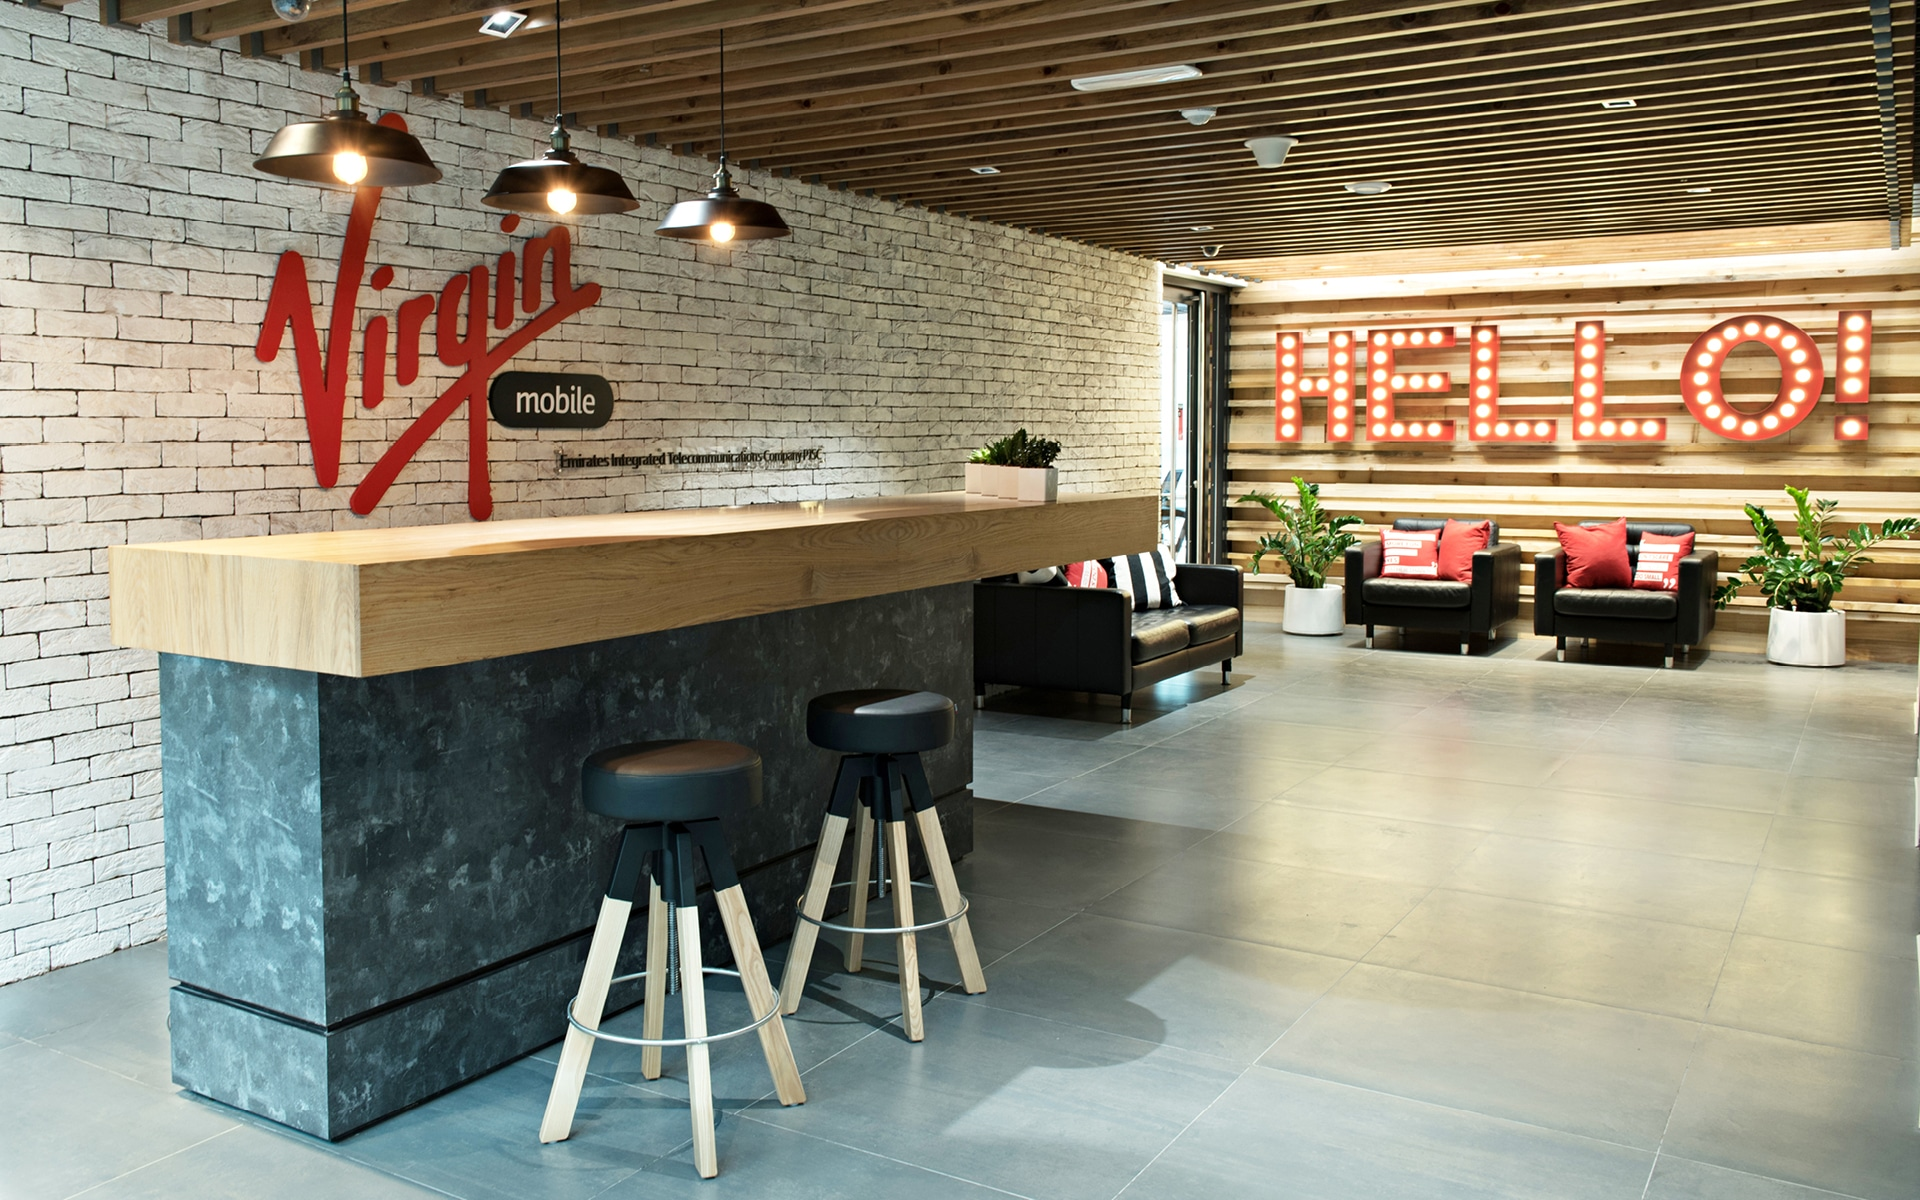 Virgin mobile Office Dubai | Architektur Schwitzke & Partner